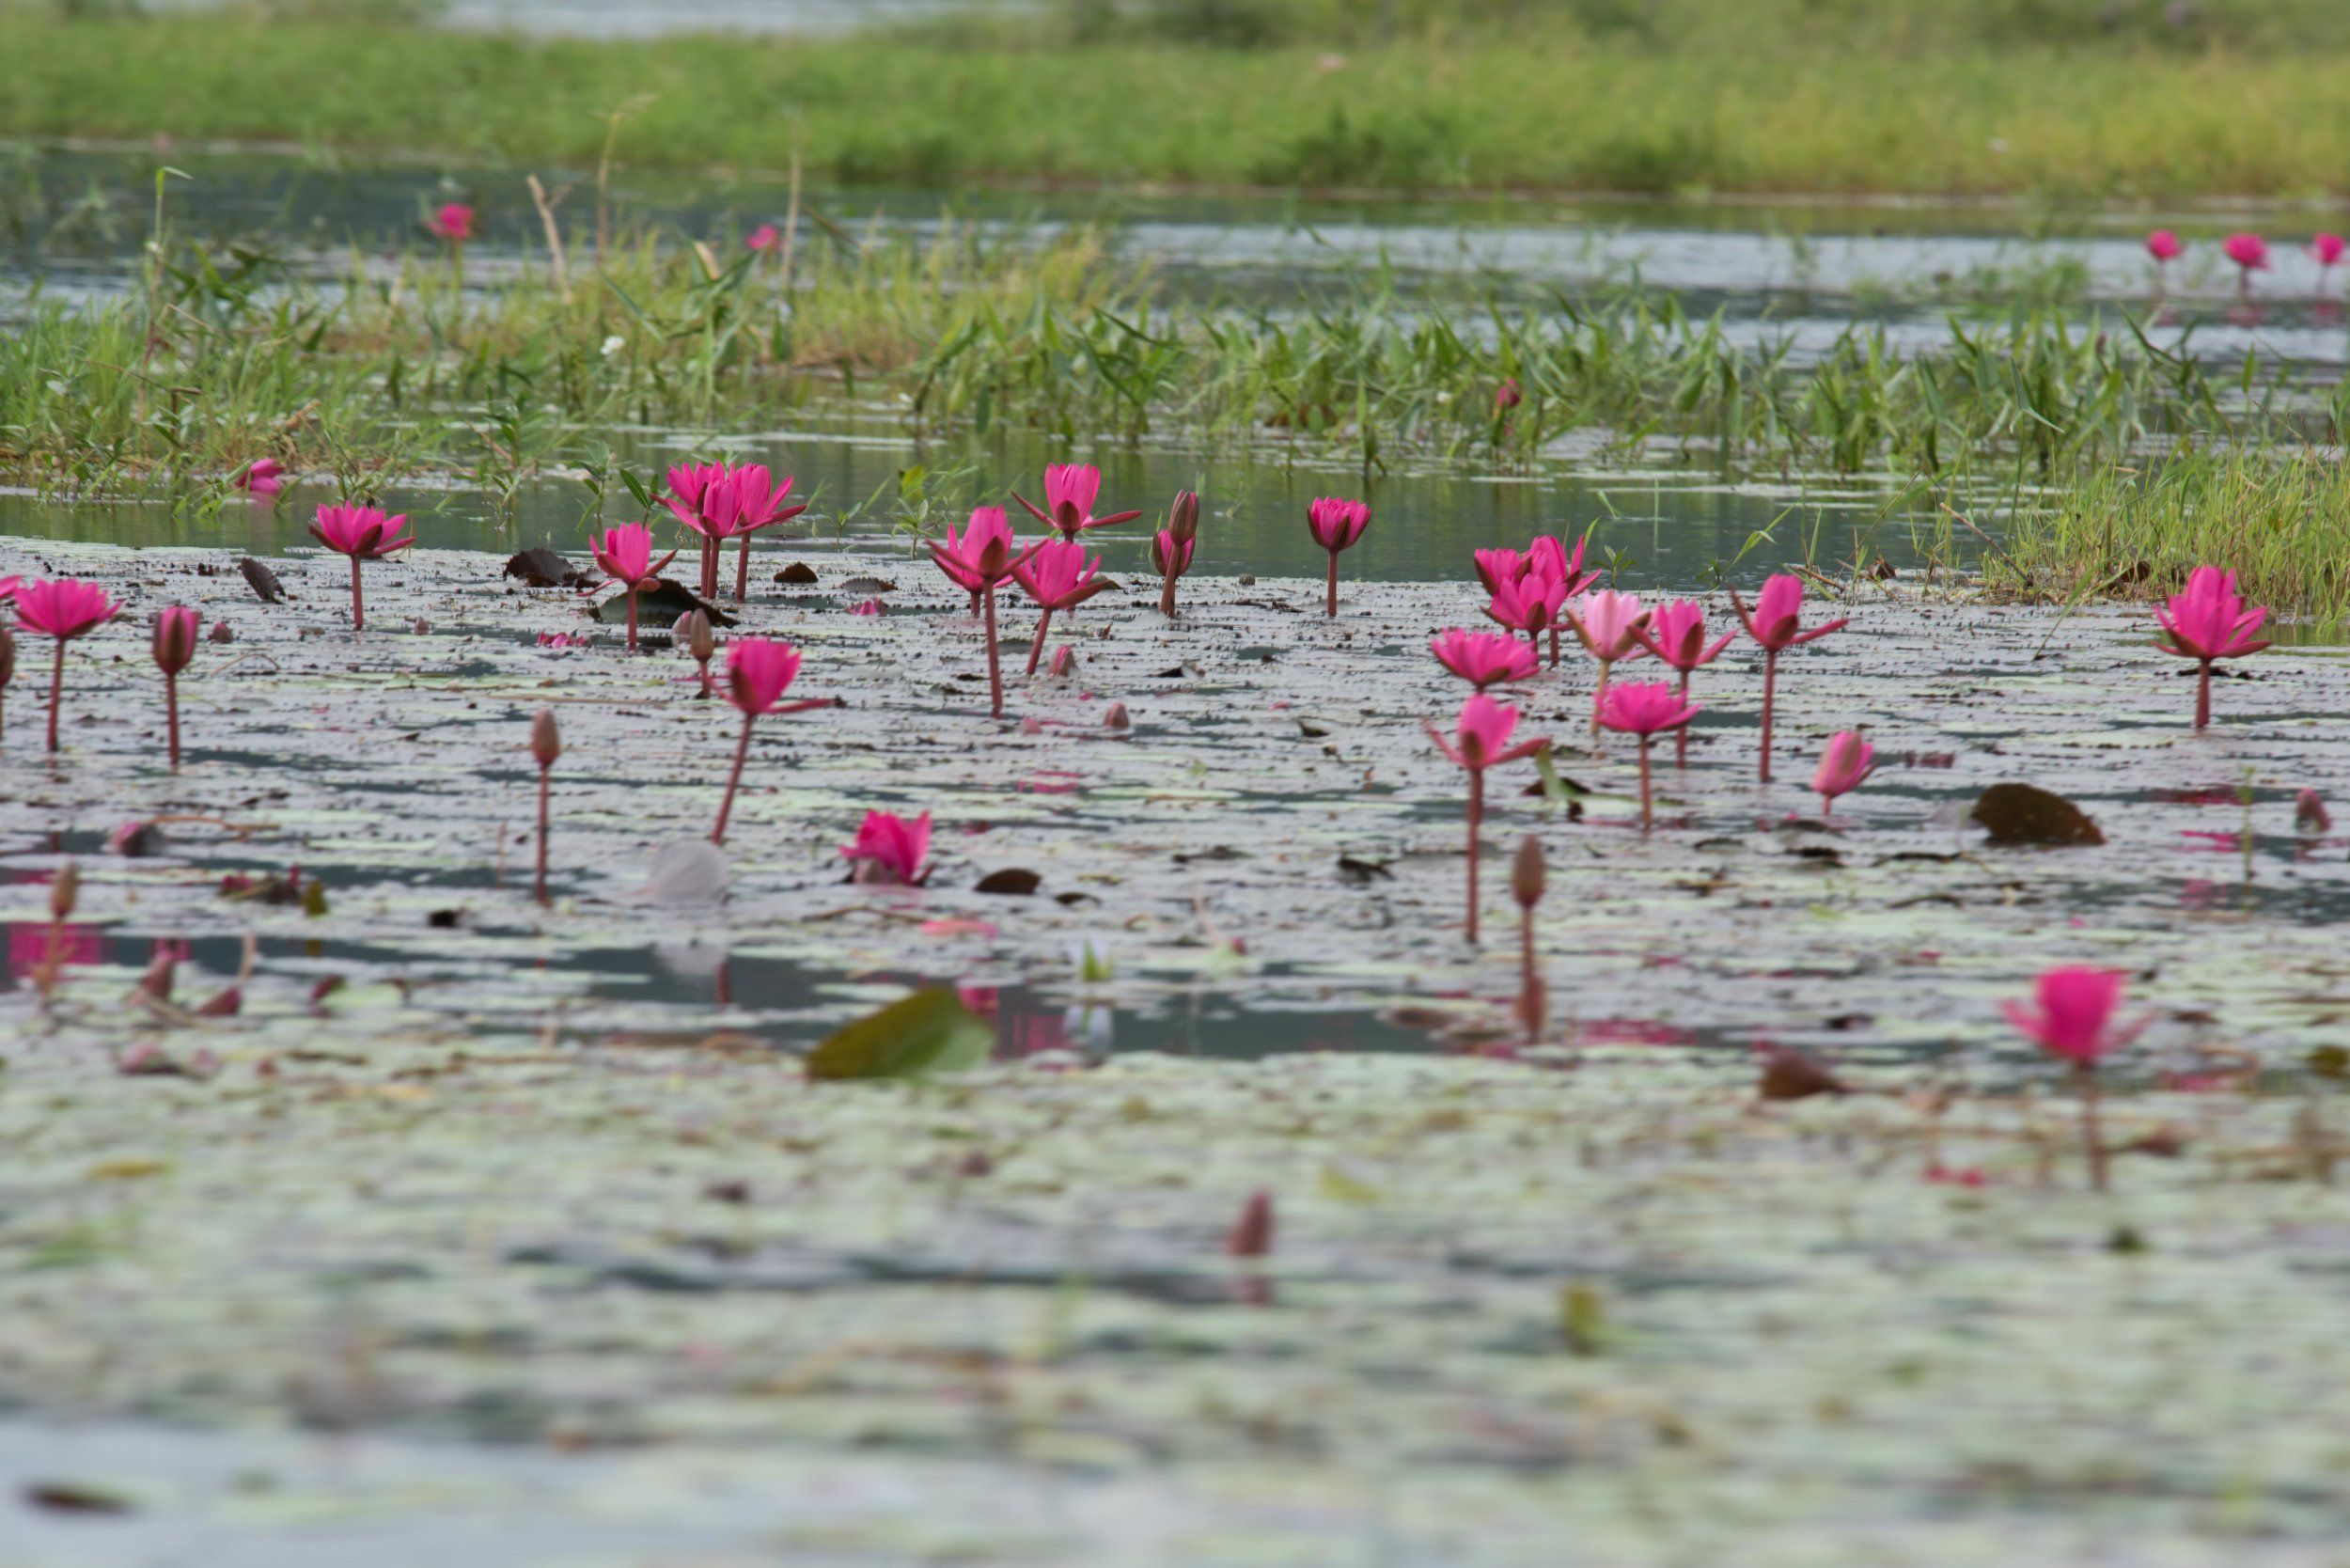 Lotus flowers 001, Inle Lake, Myanmar, 23 Nov 2017.jpg